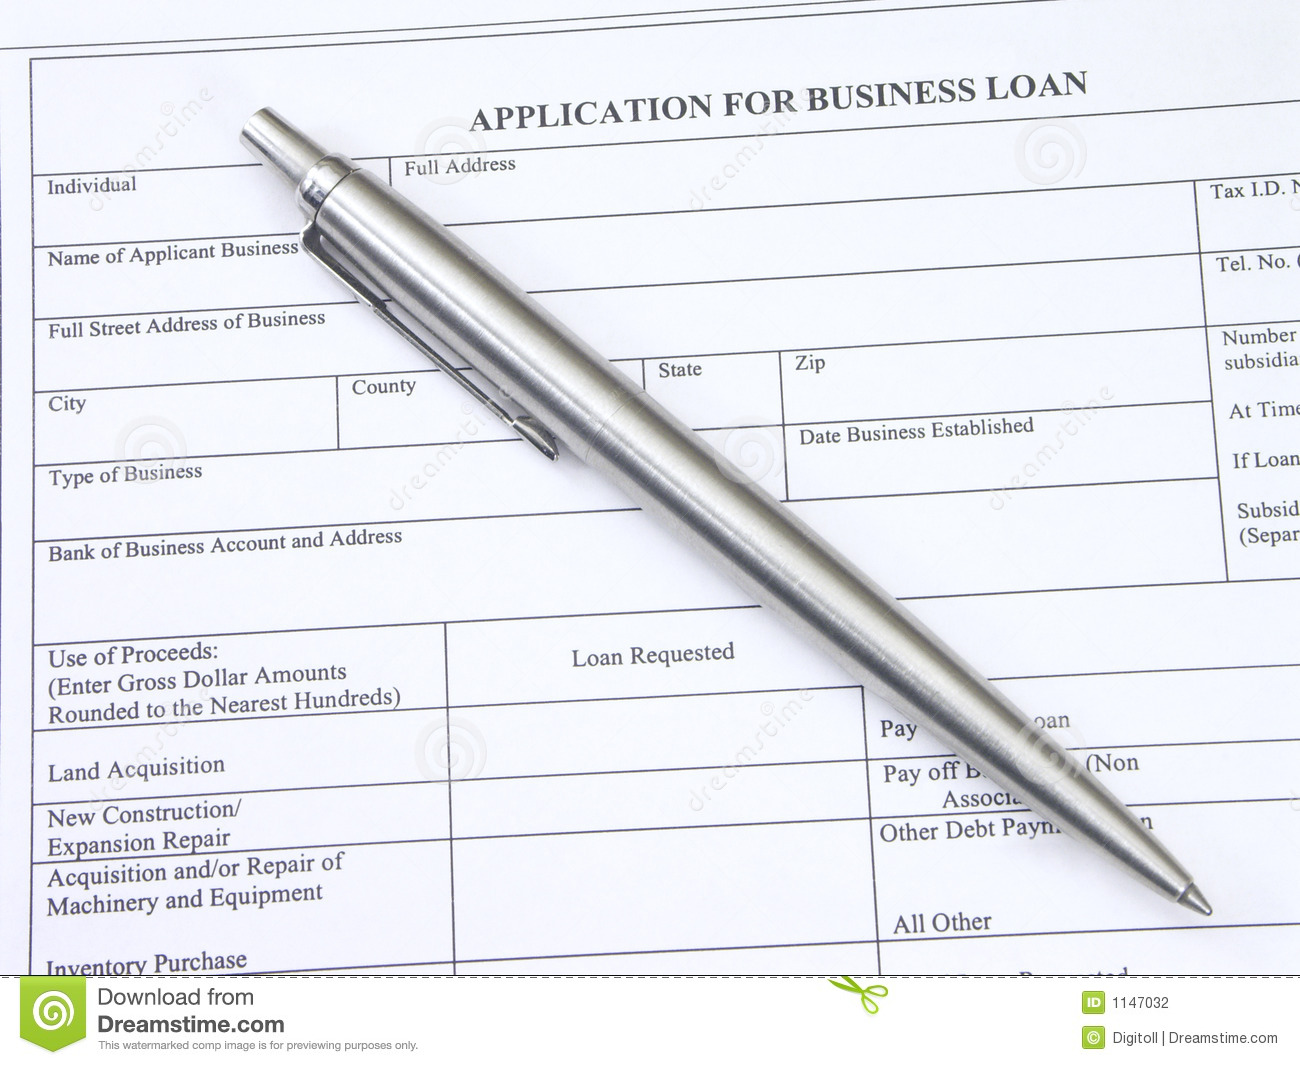 business loan application | Template